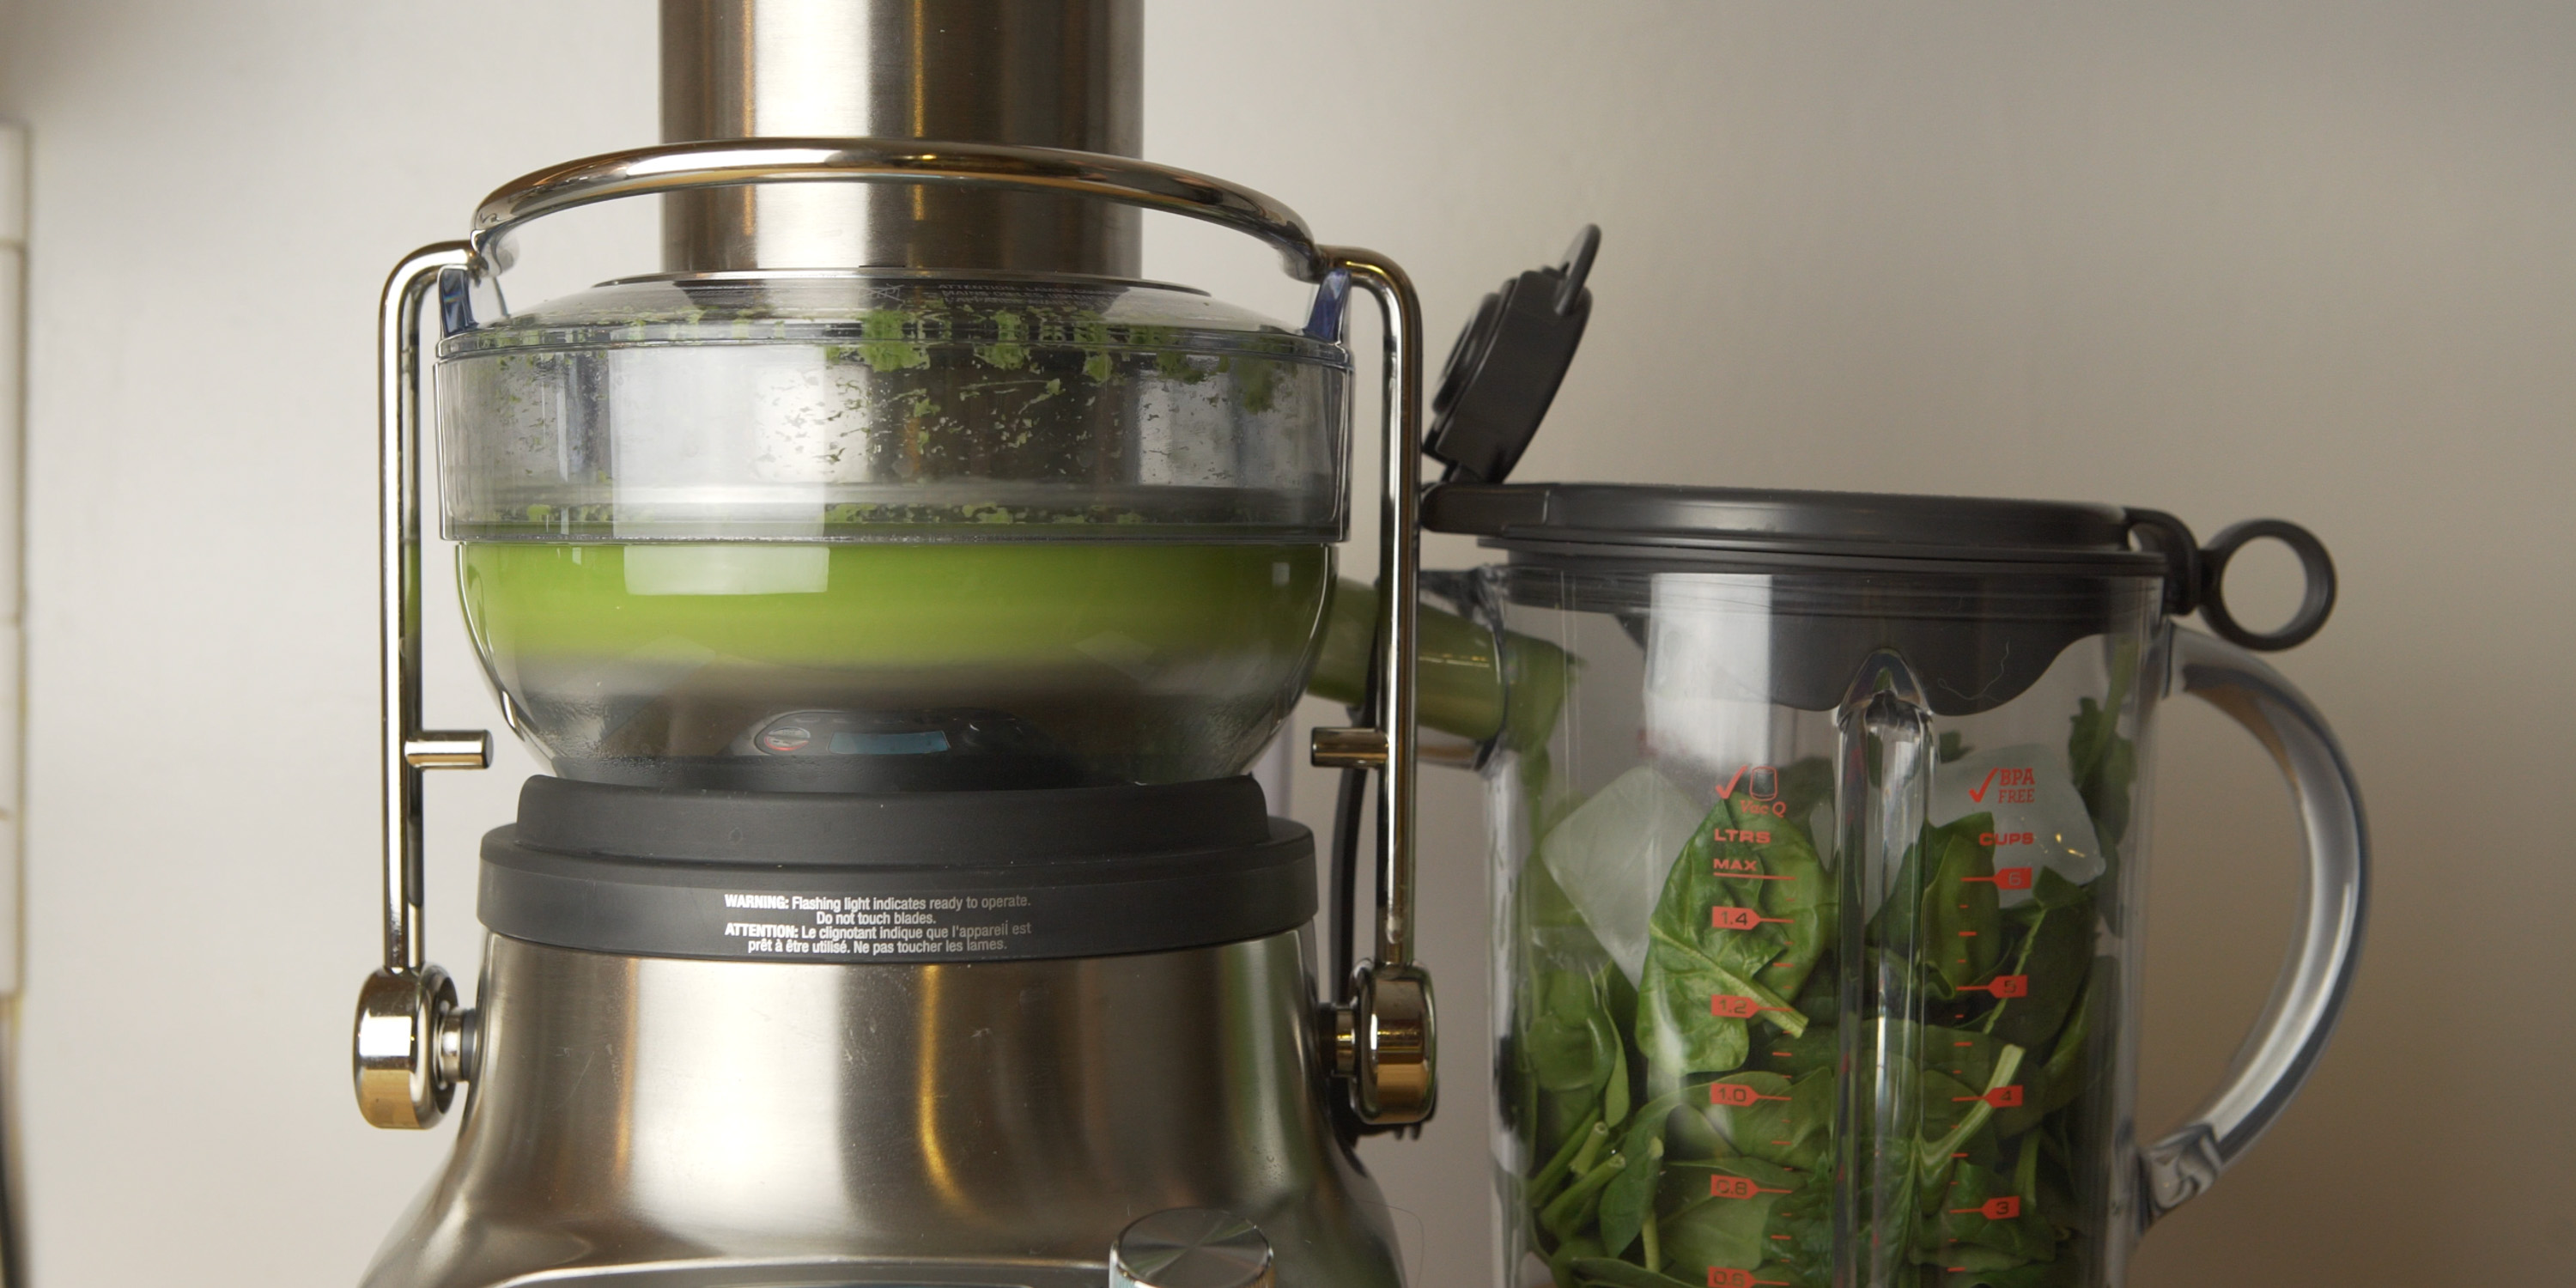 Juicing cucumbers with the 3X Bluicer Pro